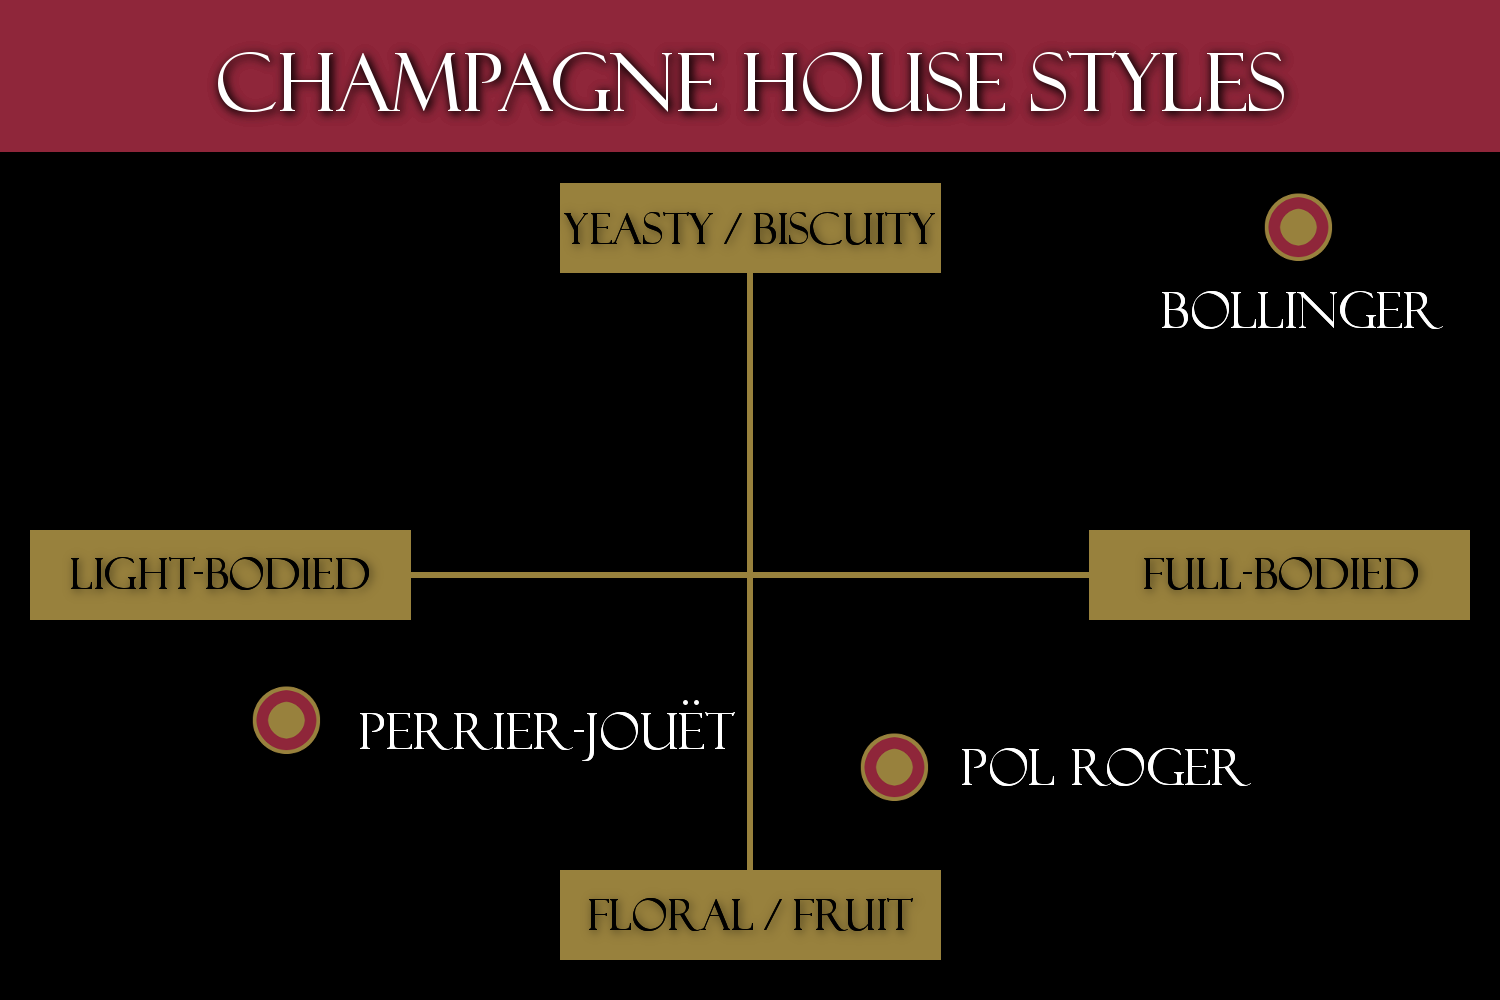 Chart of Champagne house styles on x and y axes.